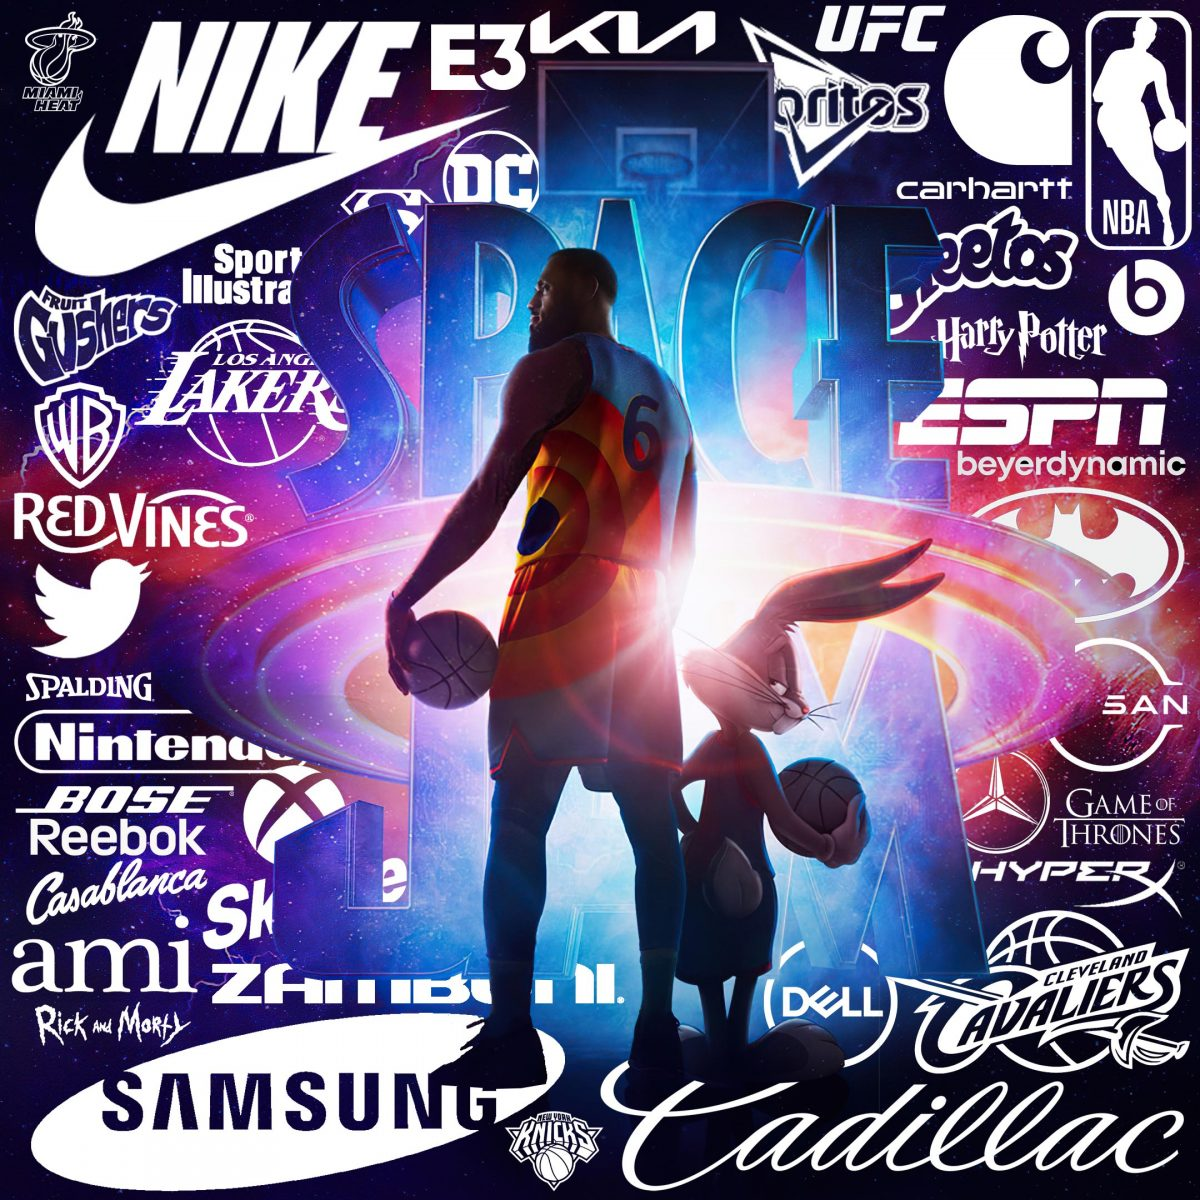 prodocut placement brands in Space Jam: A New Leg